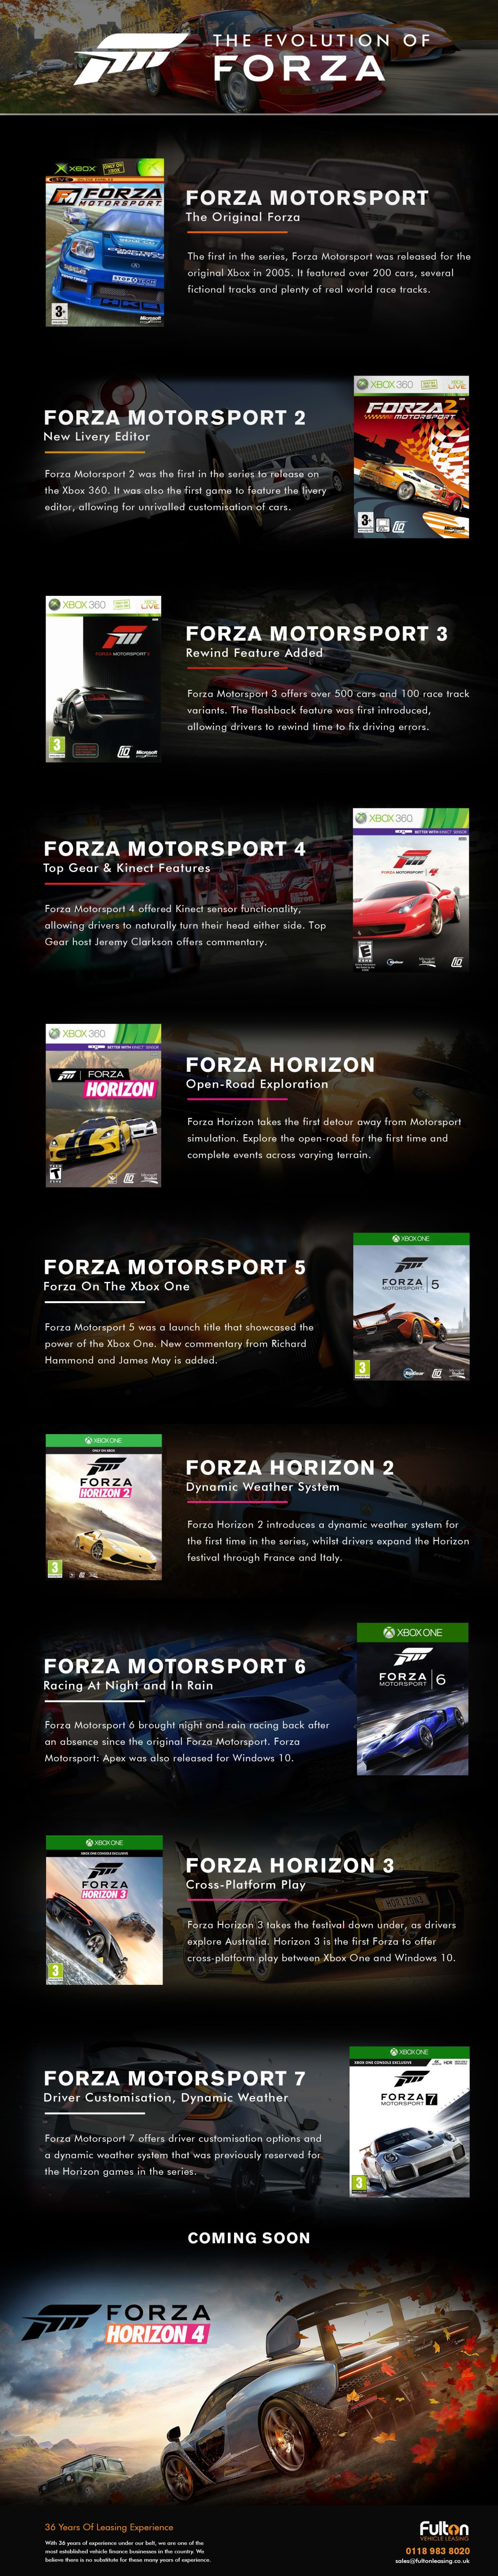 Go Forza! Evolution of Forza Motorsport Series - Infographic